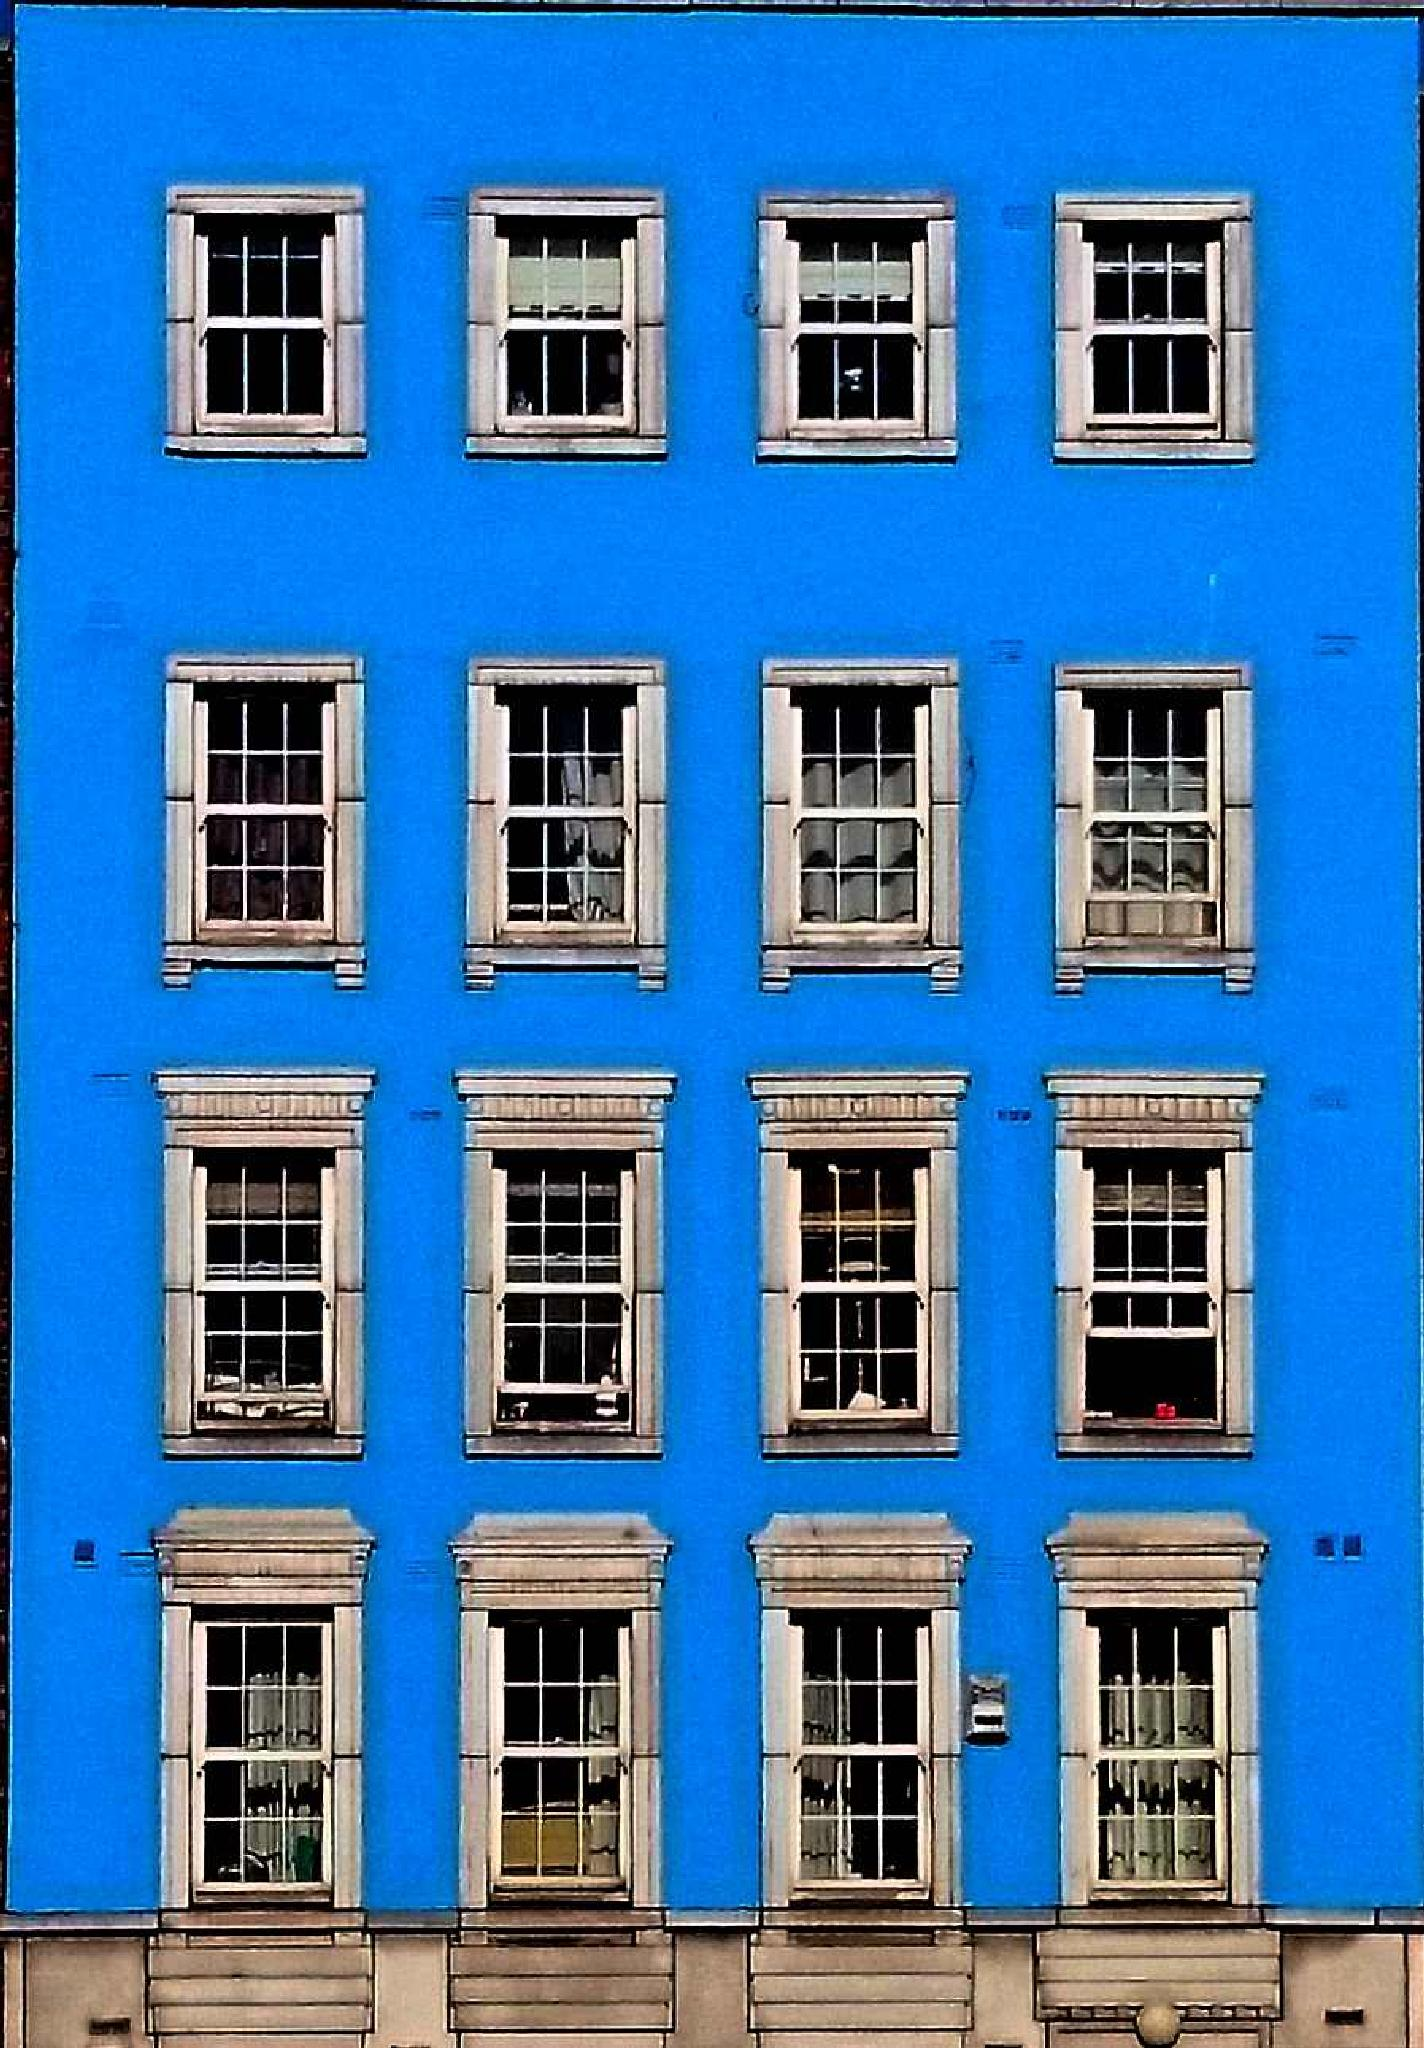 68 Windows by Steve Walsh ( Laird of Dunans )